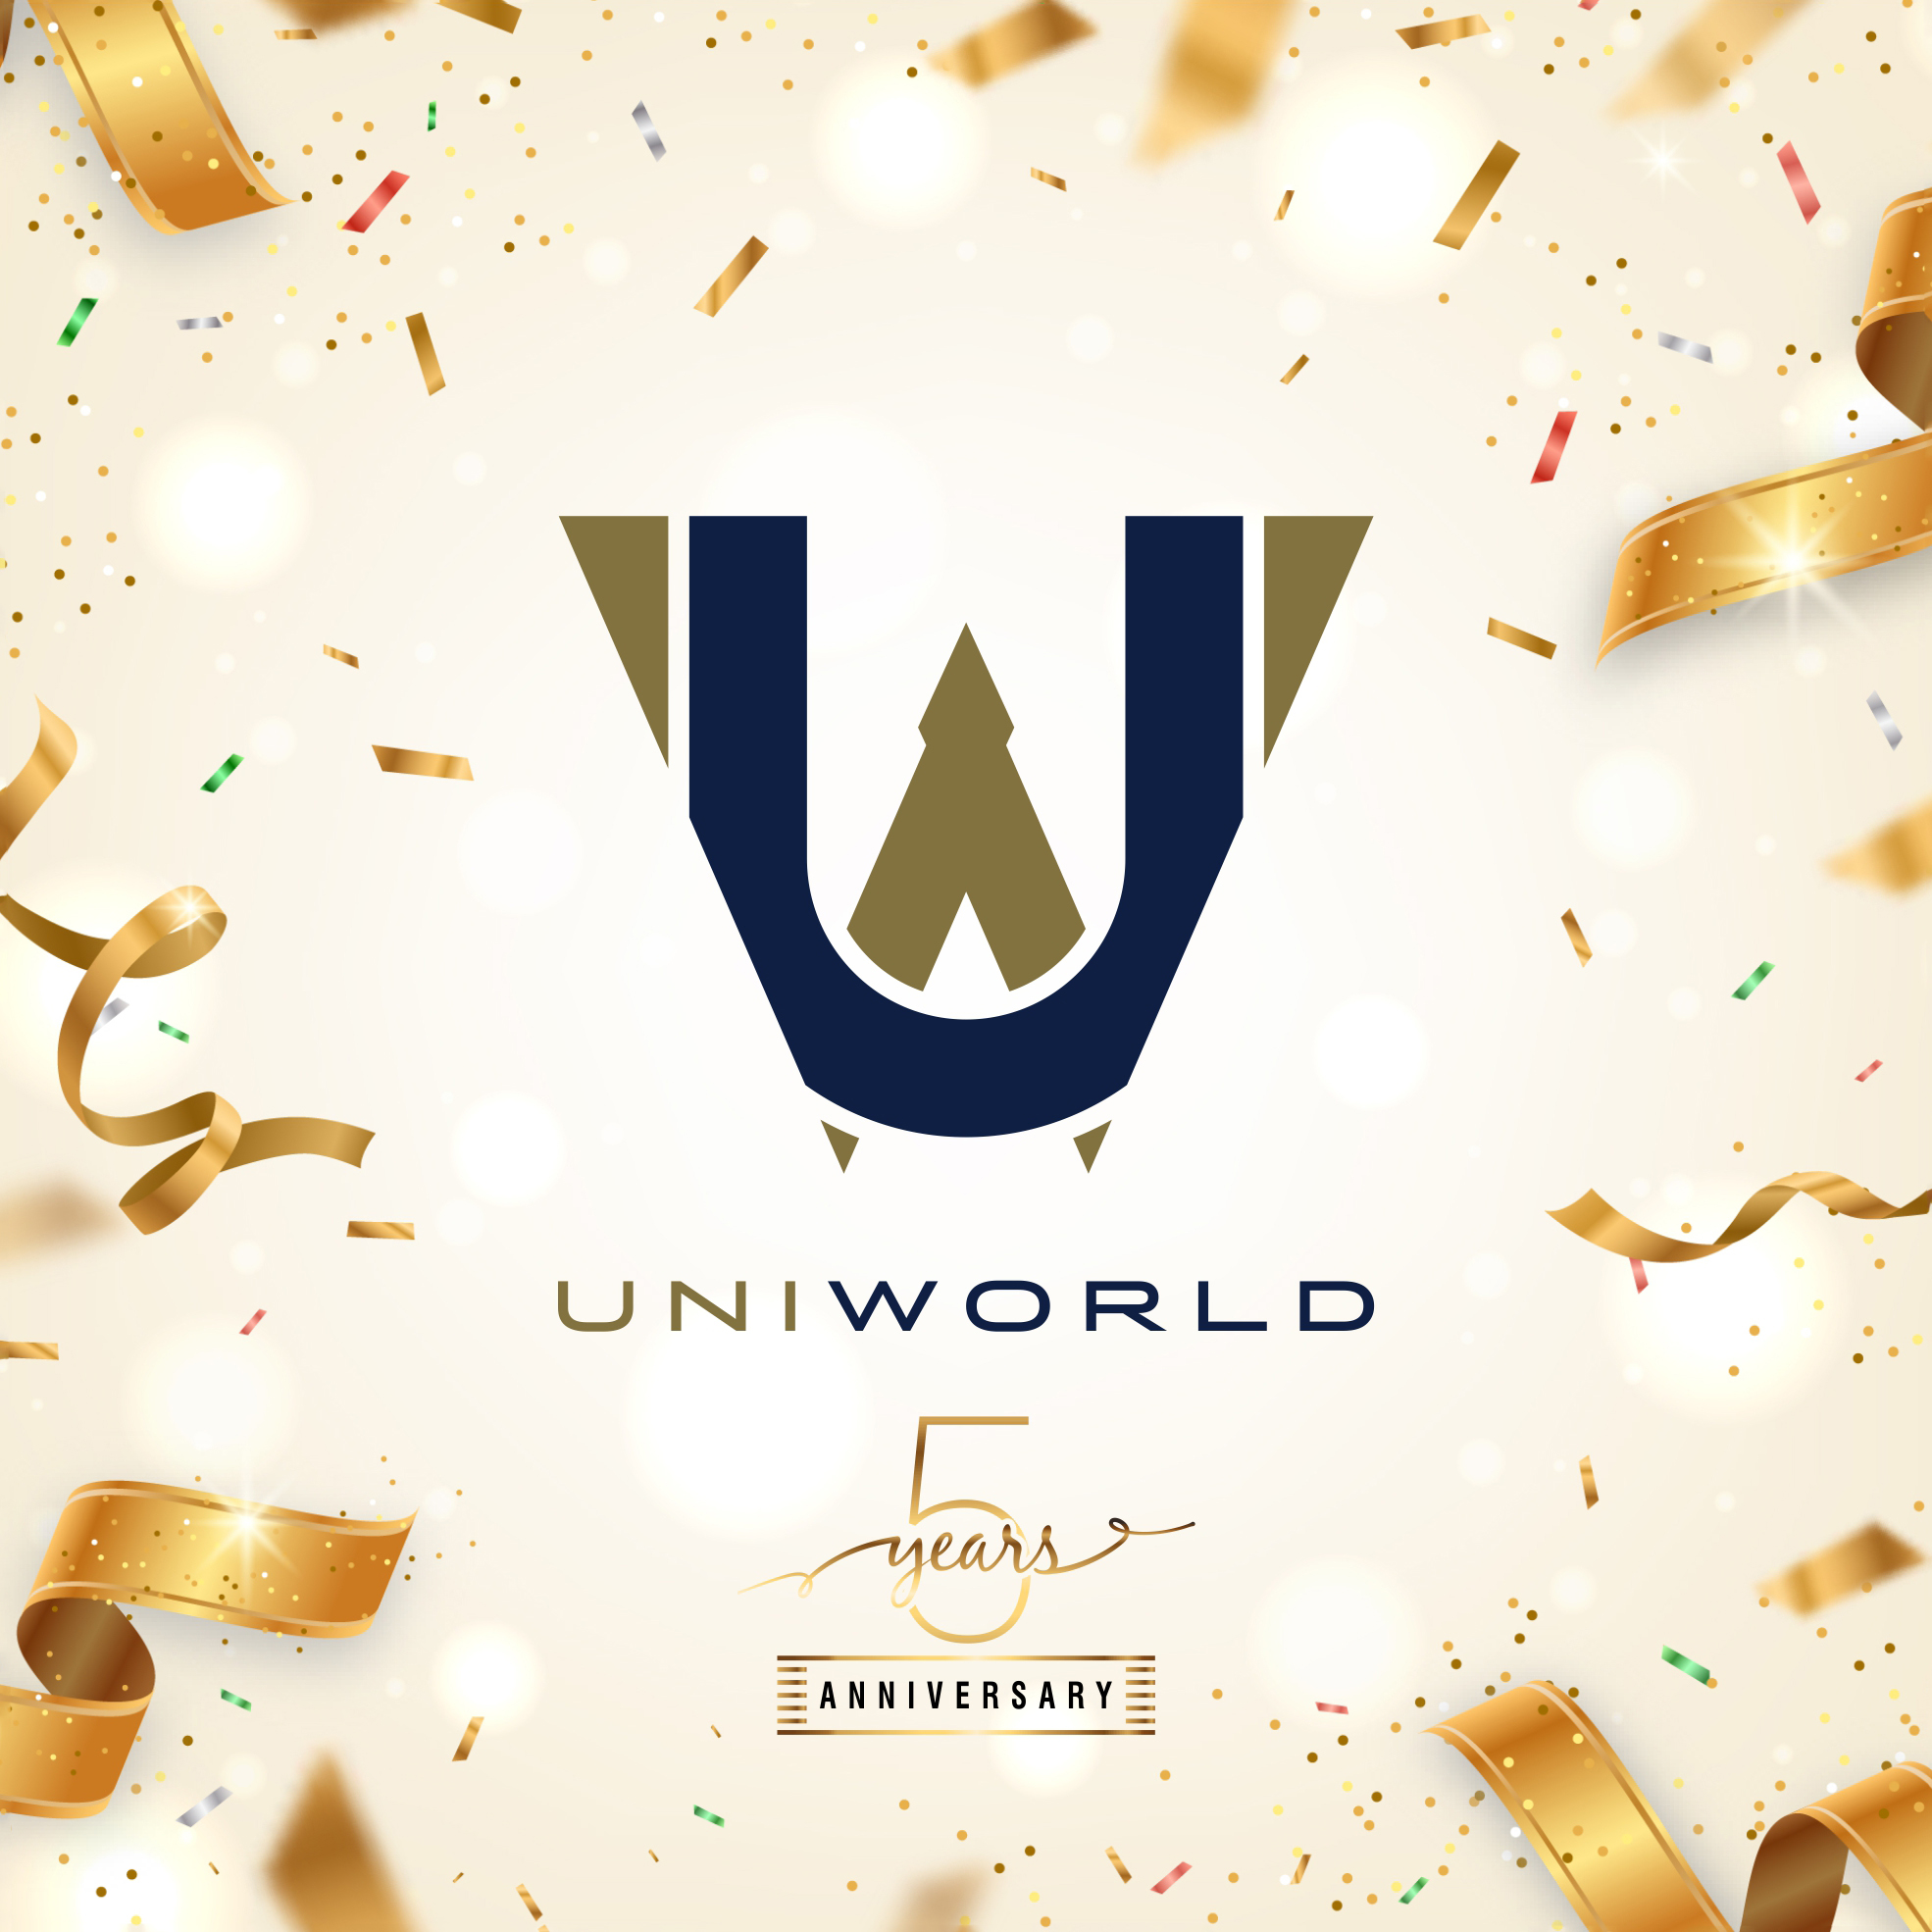 UNIWORLD STUDIOS REVEAL NEW BRAND IDENTITY WITH A REDESIGNED LOGO